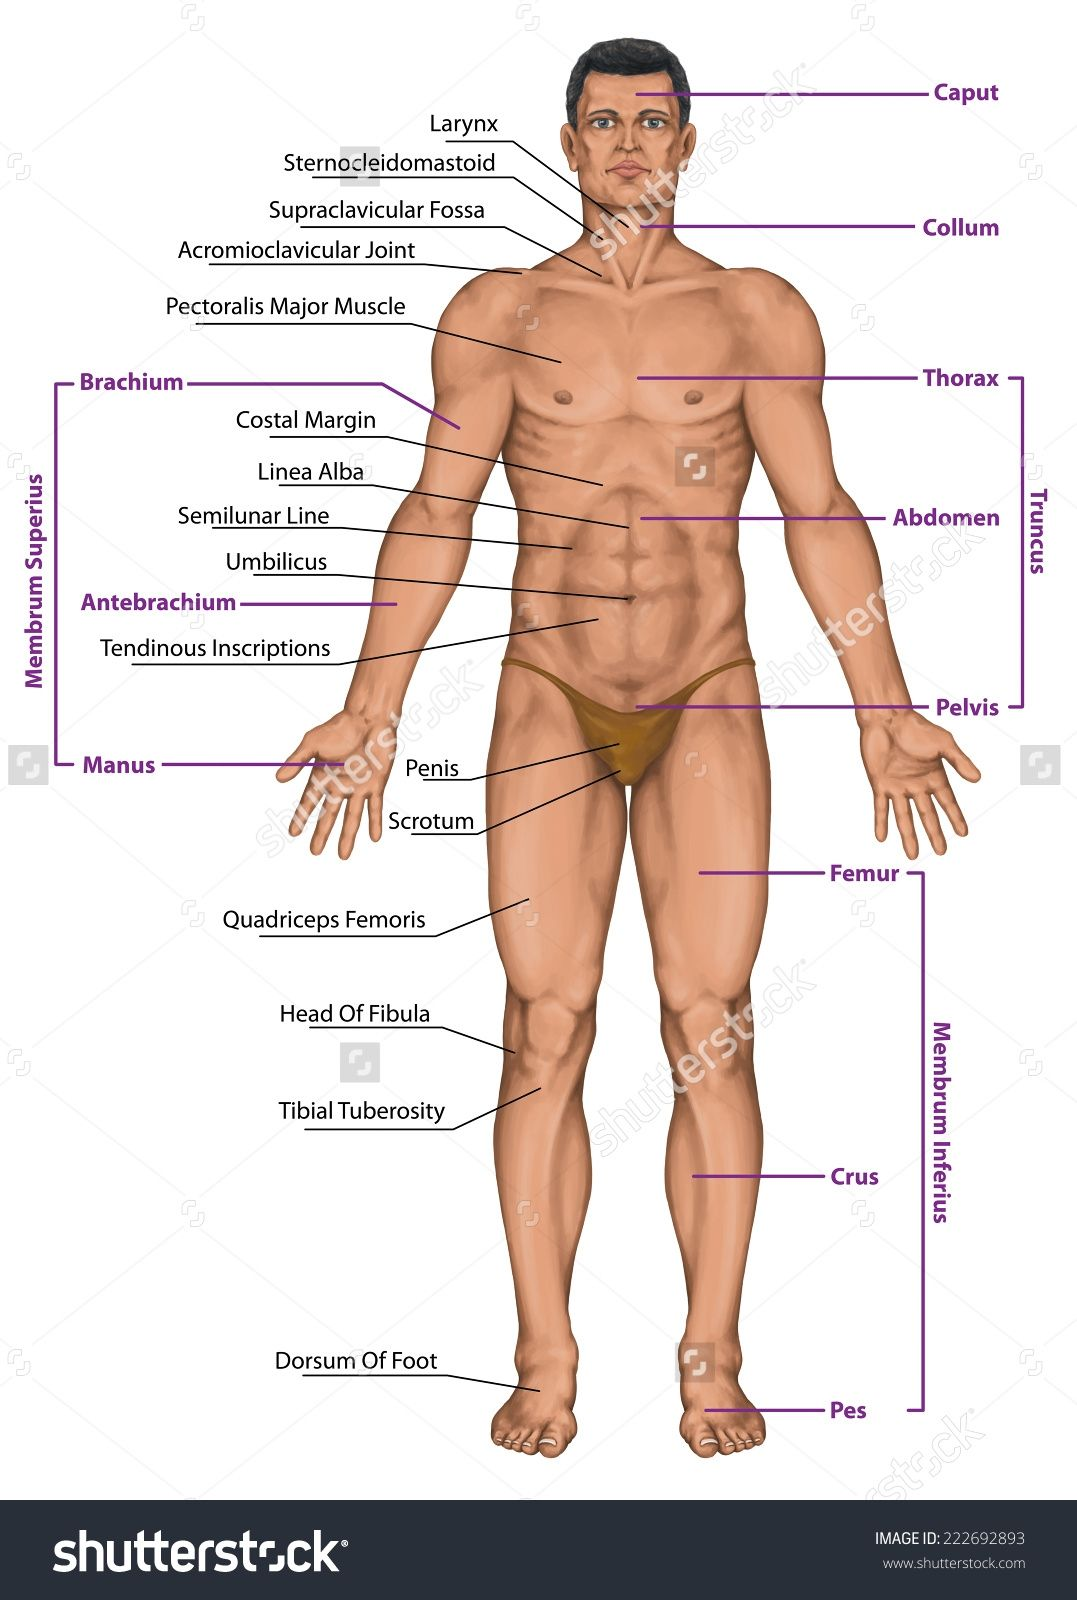 Man Body Parts Namr With Pic Body Parts Name Of Man - Anatomy Human ...